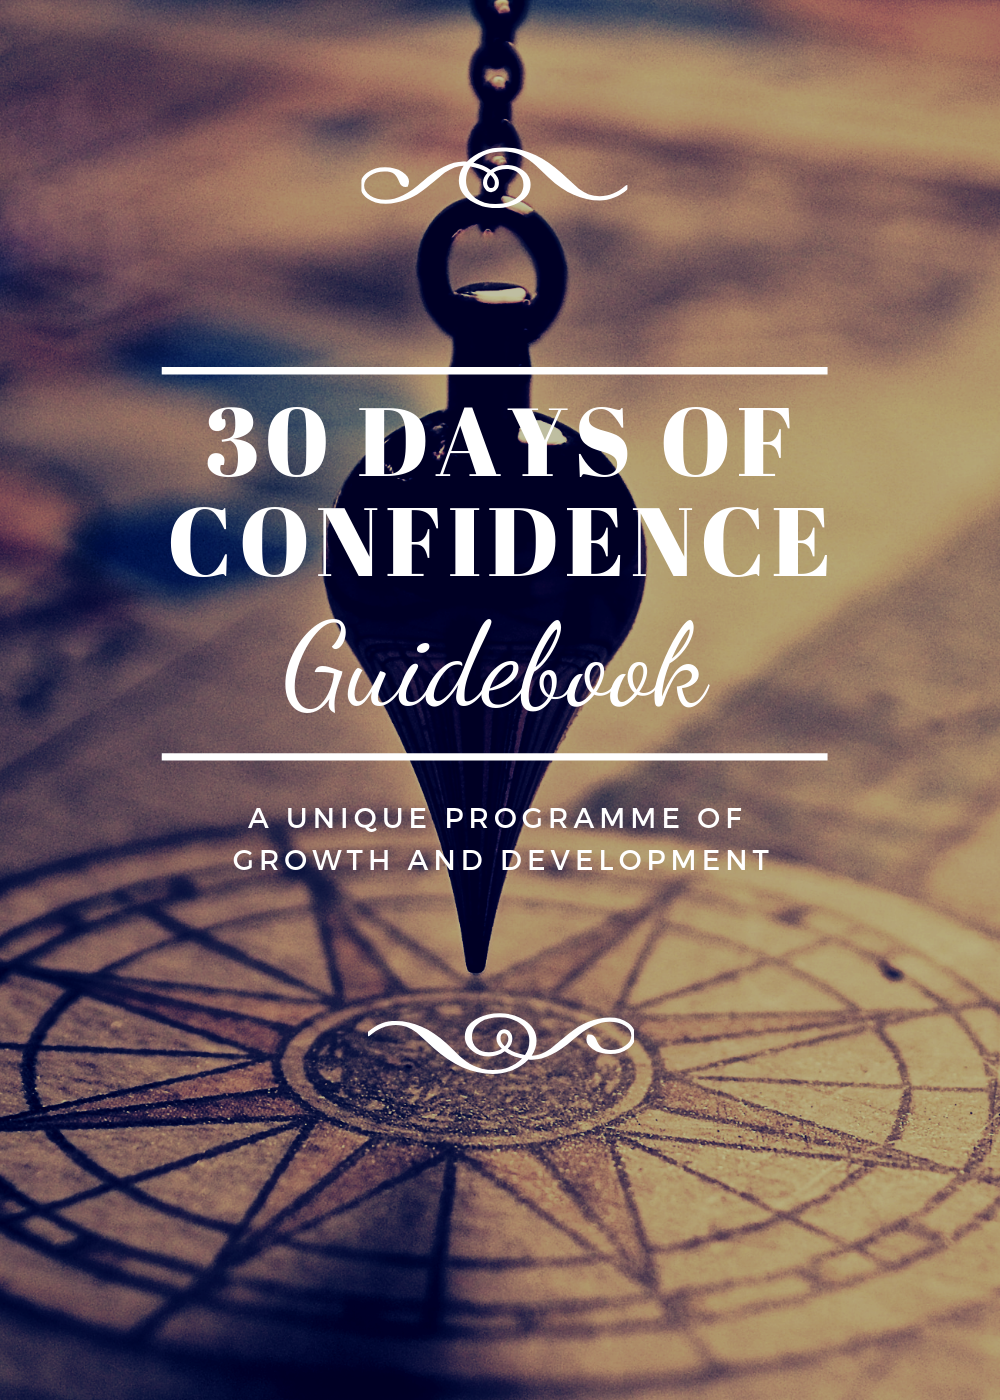 30 Days of Confidence Book Cover 2.png